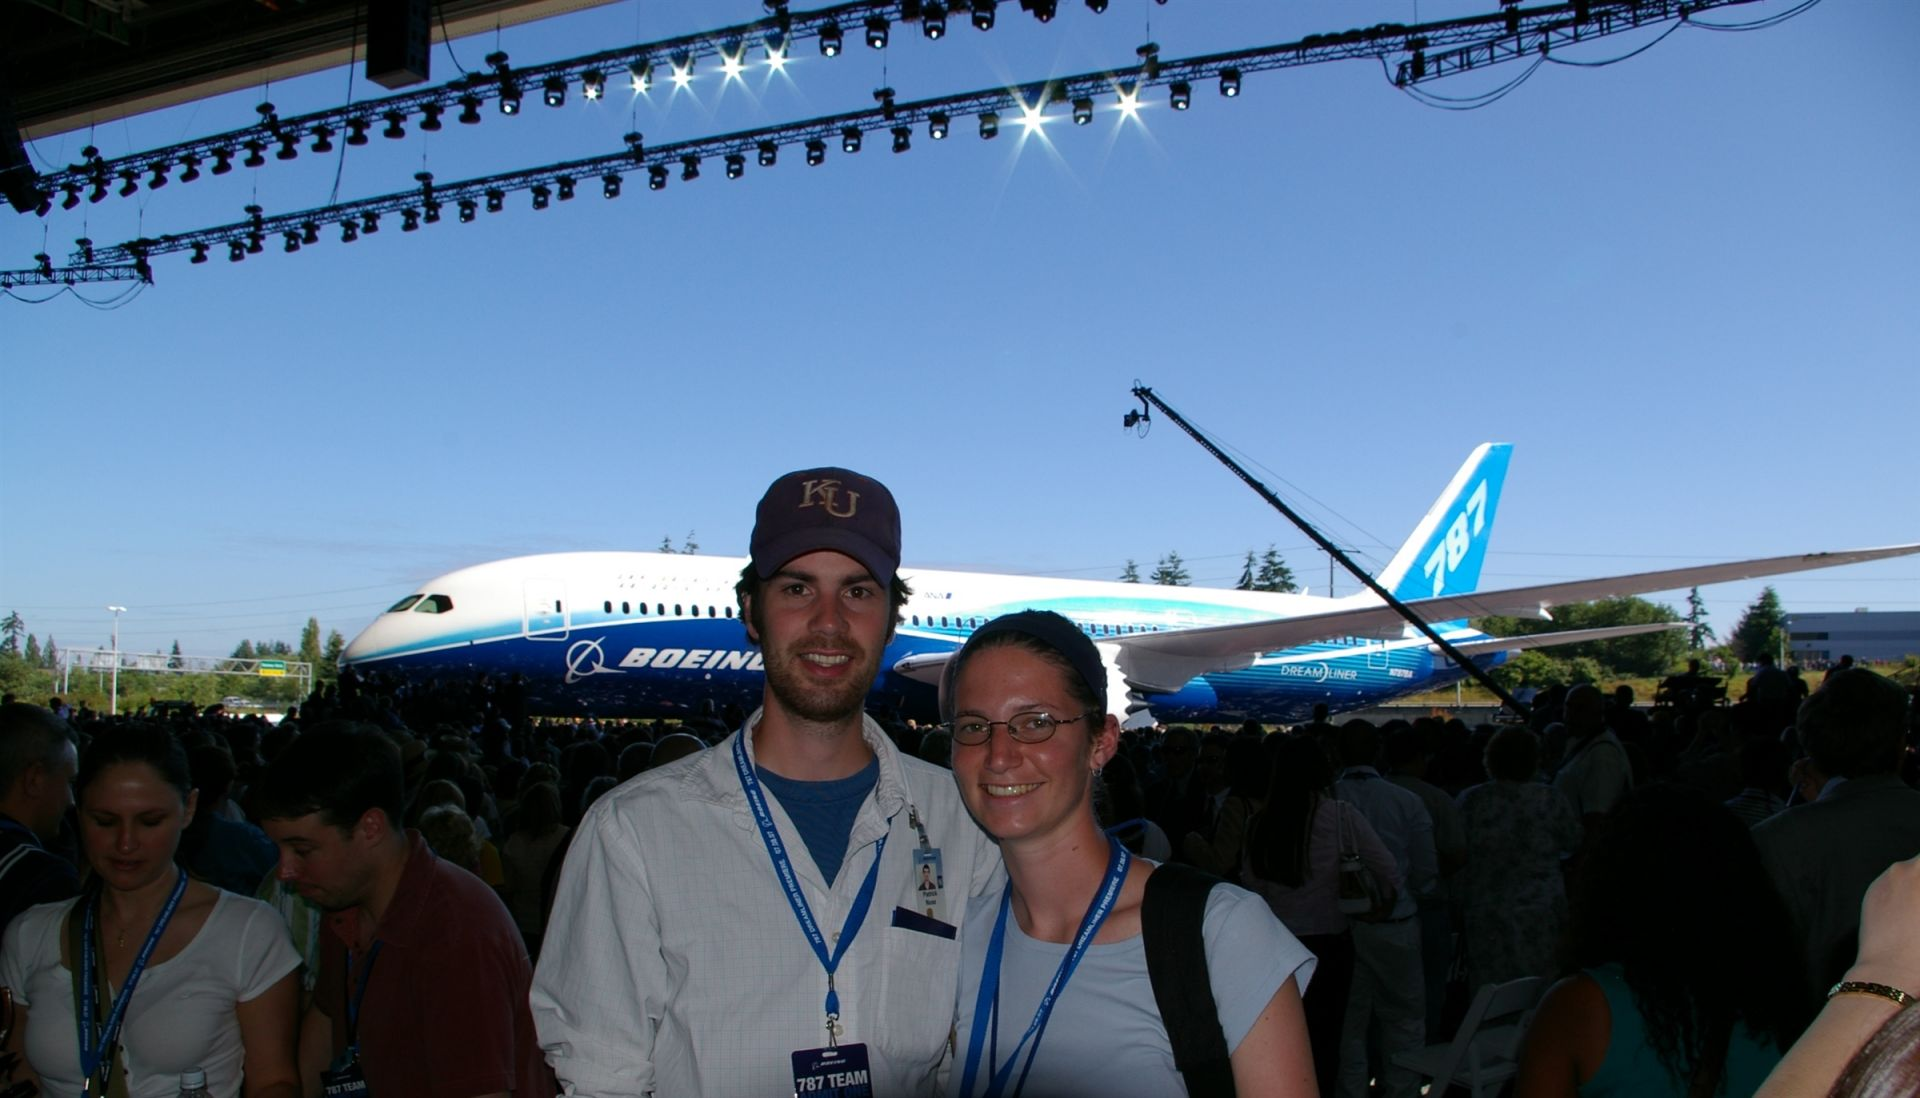 Gina Pricco Nuss '02 is an engineer for Boeing